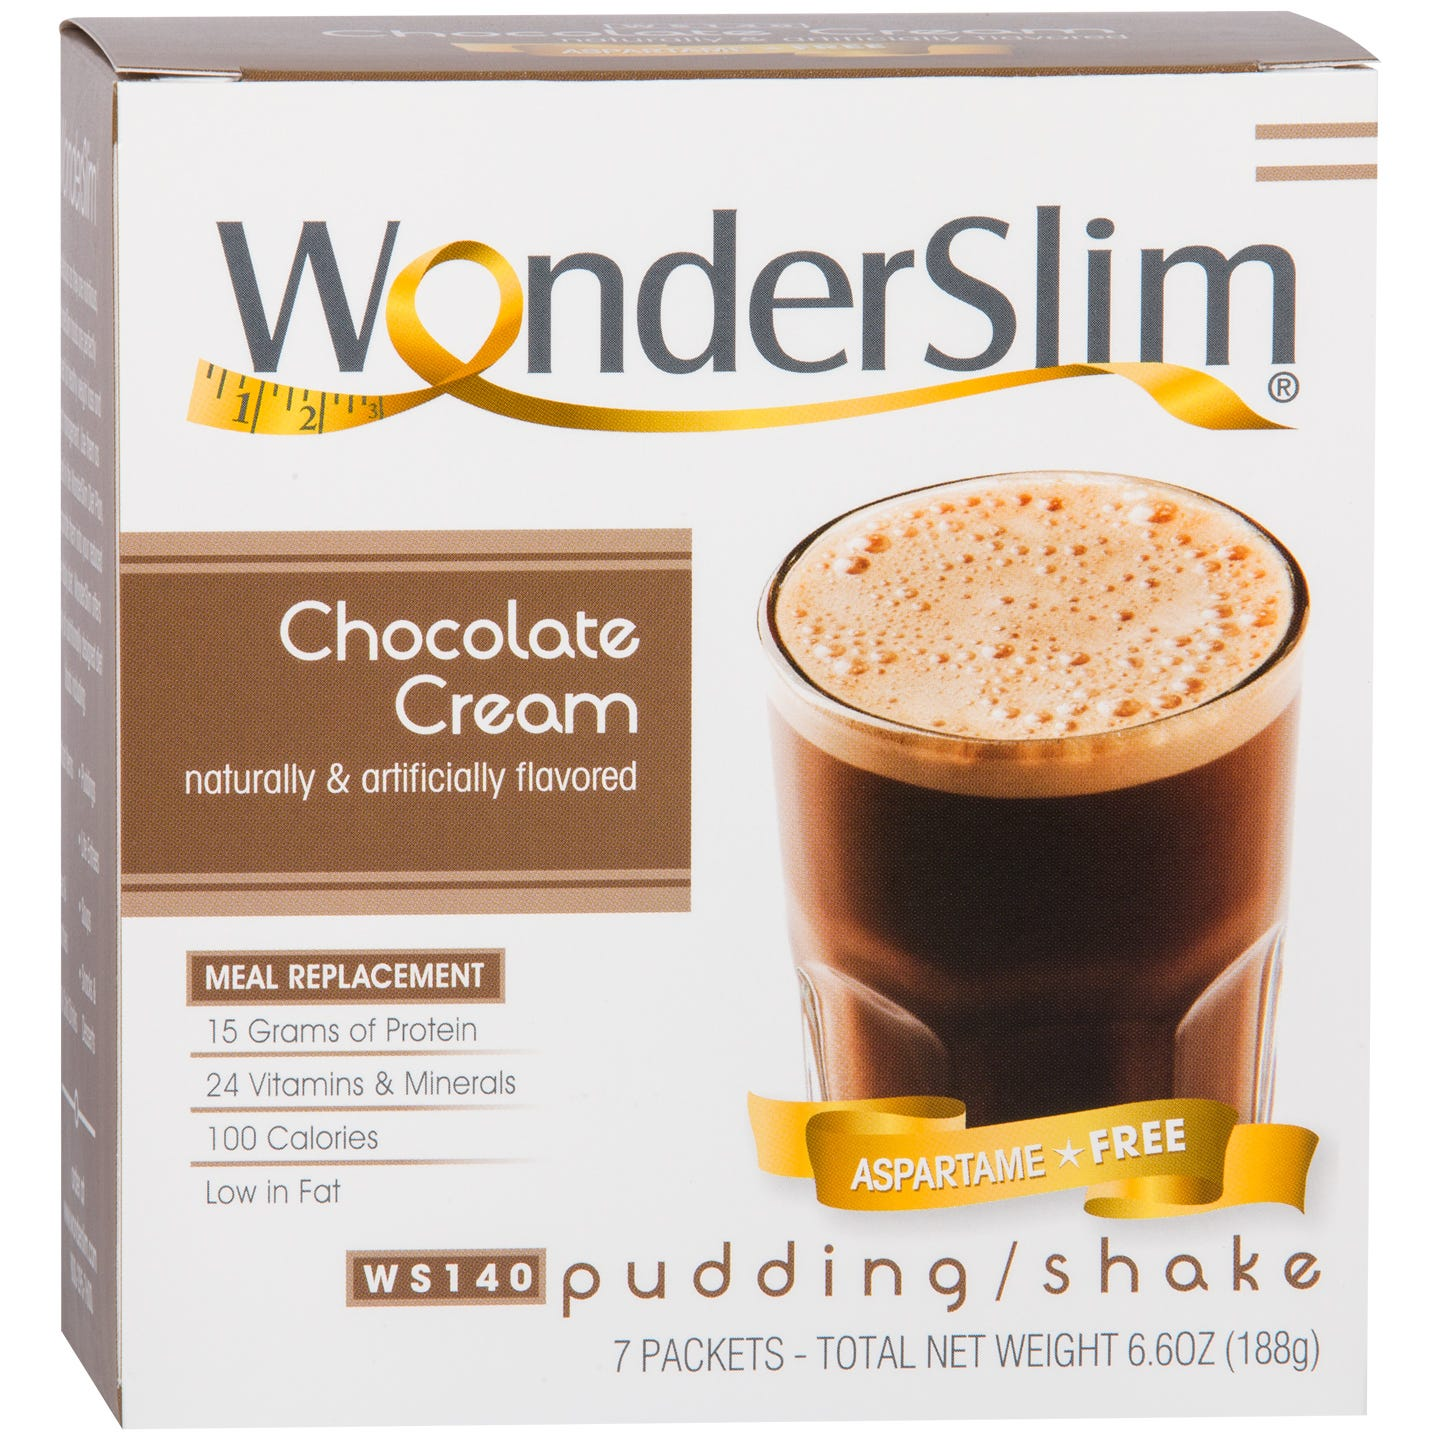 WonderSlim Aspartame-Free Meal Replacement Pudding/Shake Chocolate Cream (7 ct)